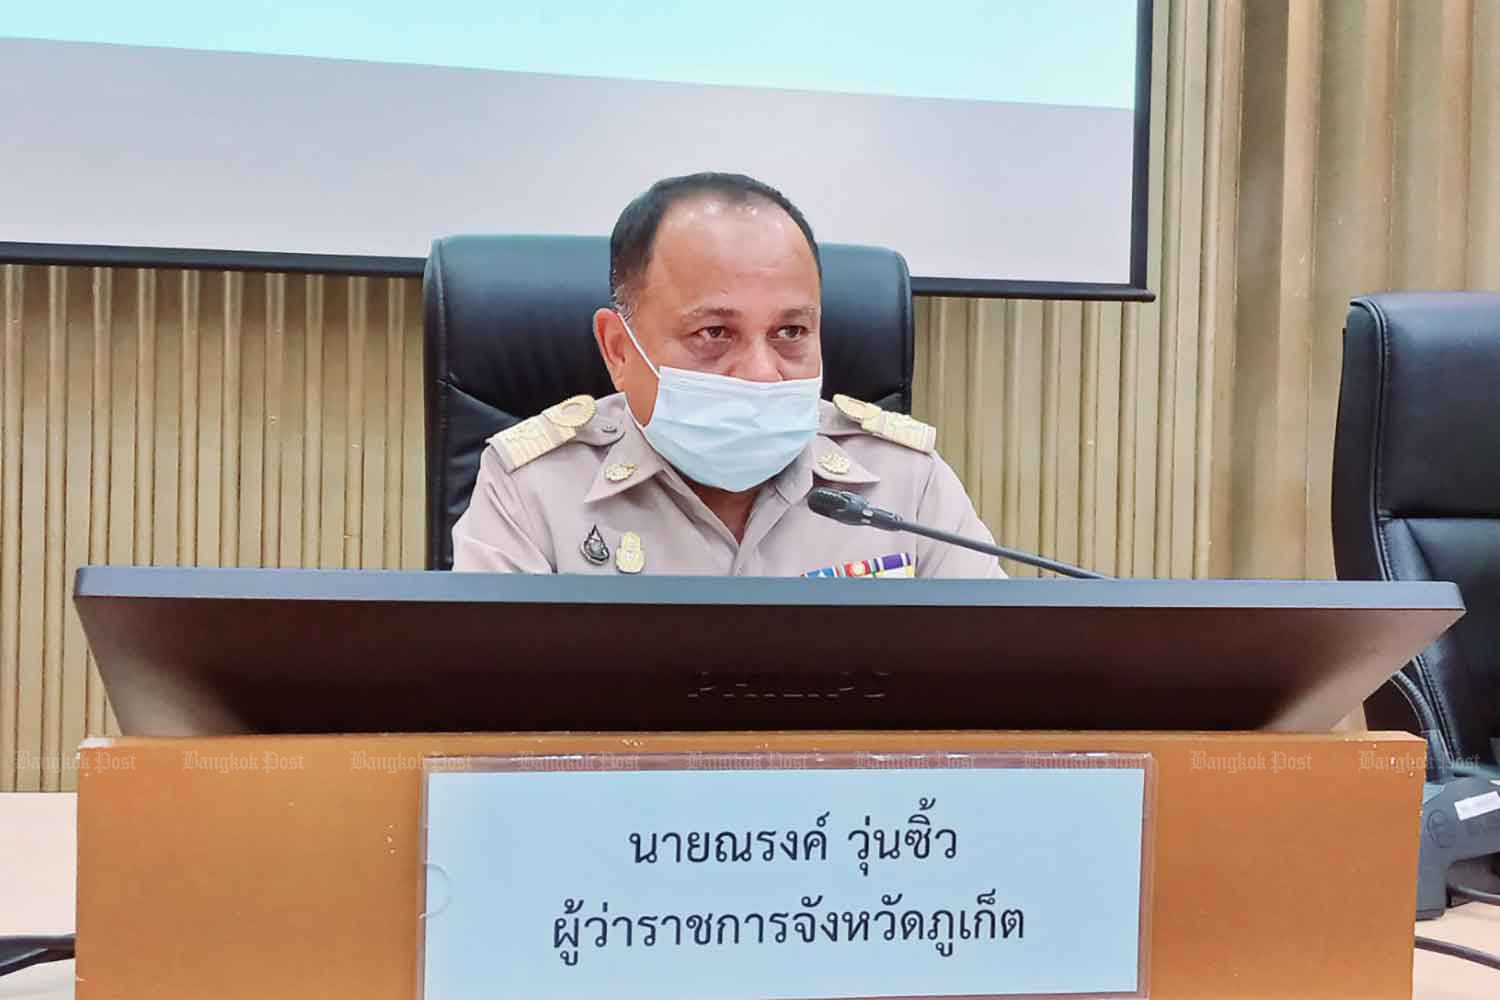 Phuket governor Narong Woonciew at a press conference on Monday. (Photo: Achadtaya Chuenniran)